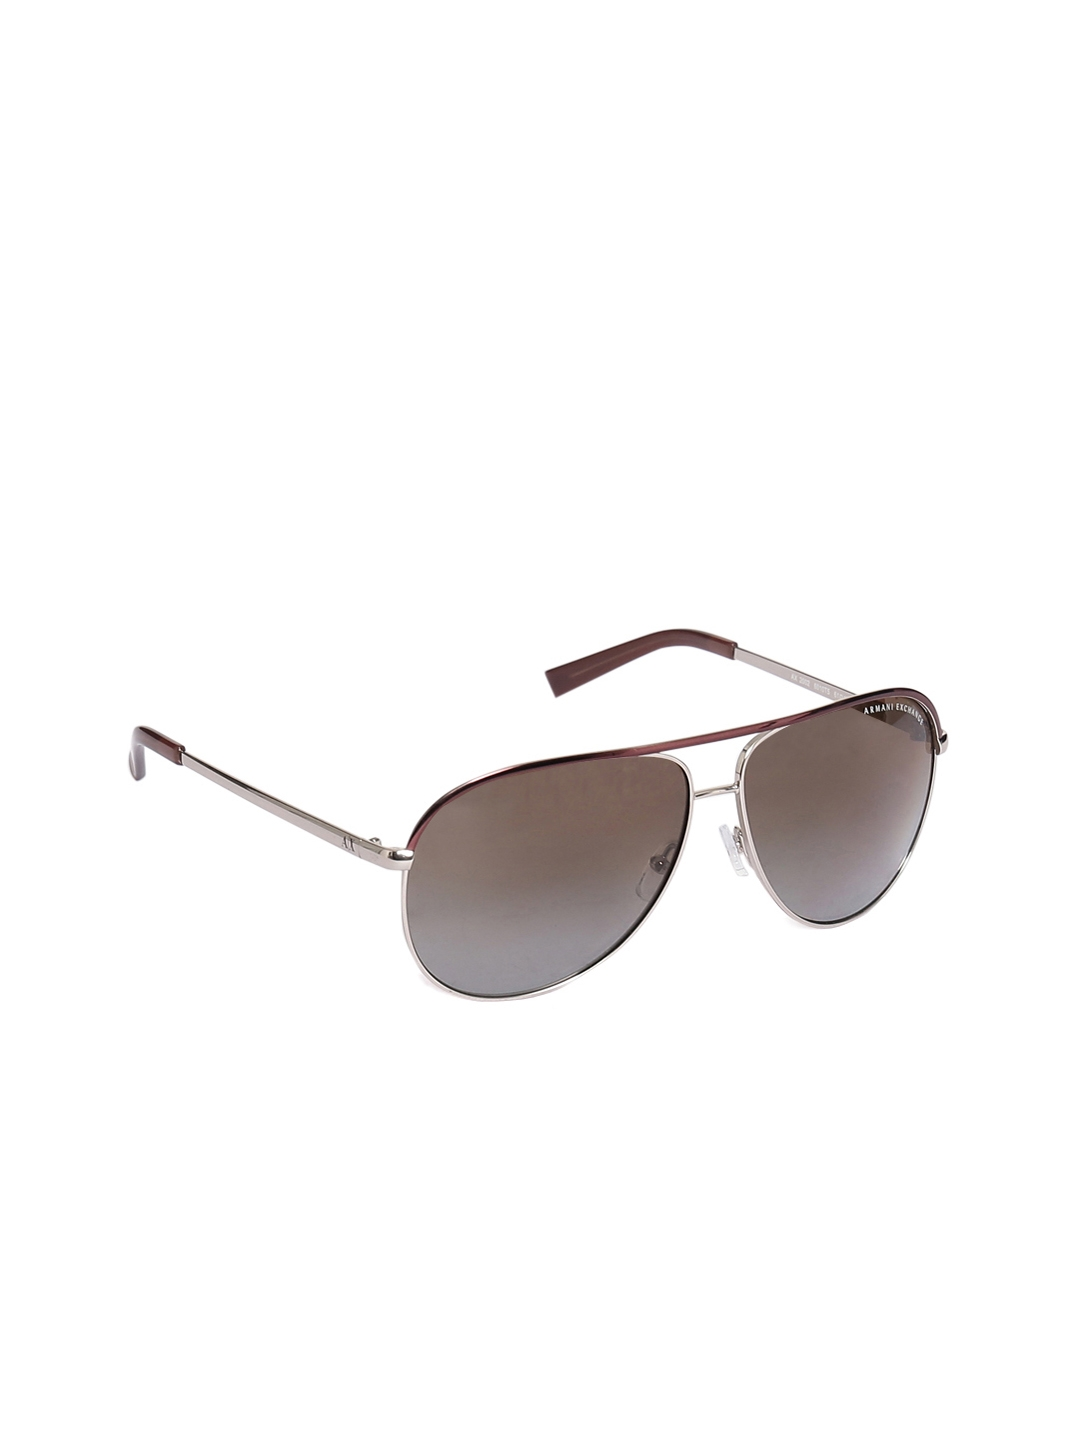 43c6655135 Buy Armani Exchange Unisex Aviator Sunglasses 0AX20026010T561 ...